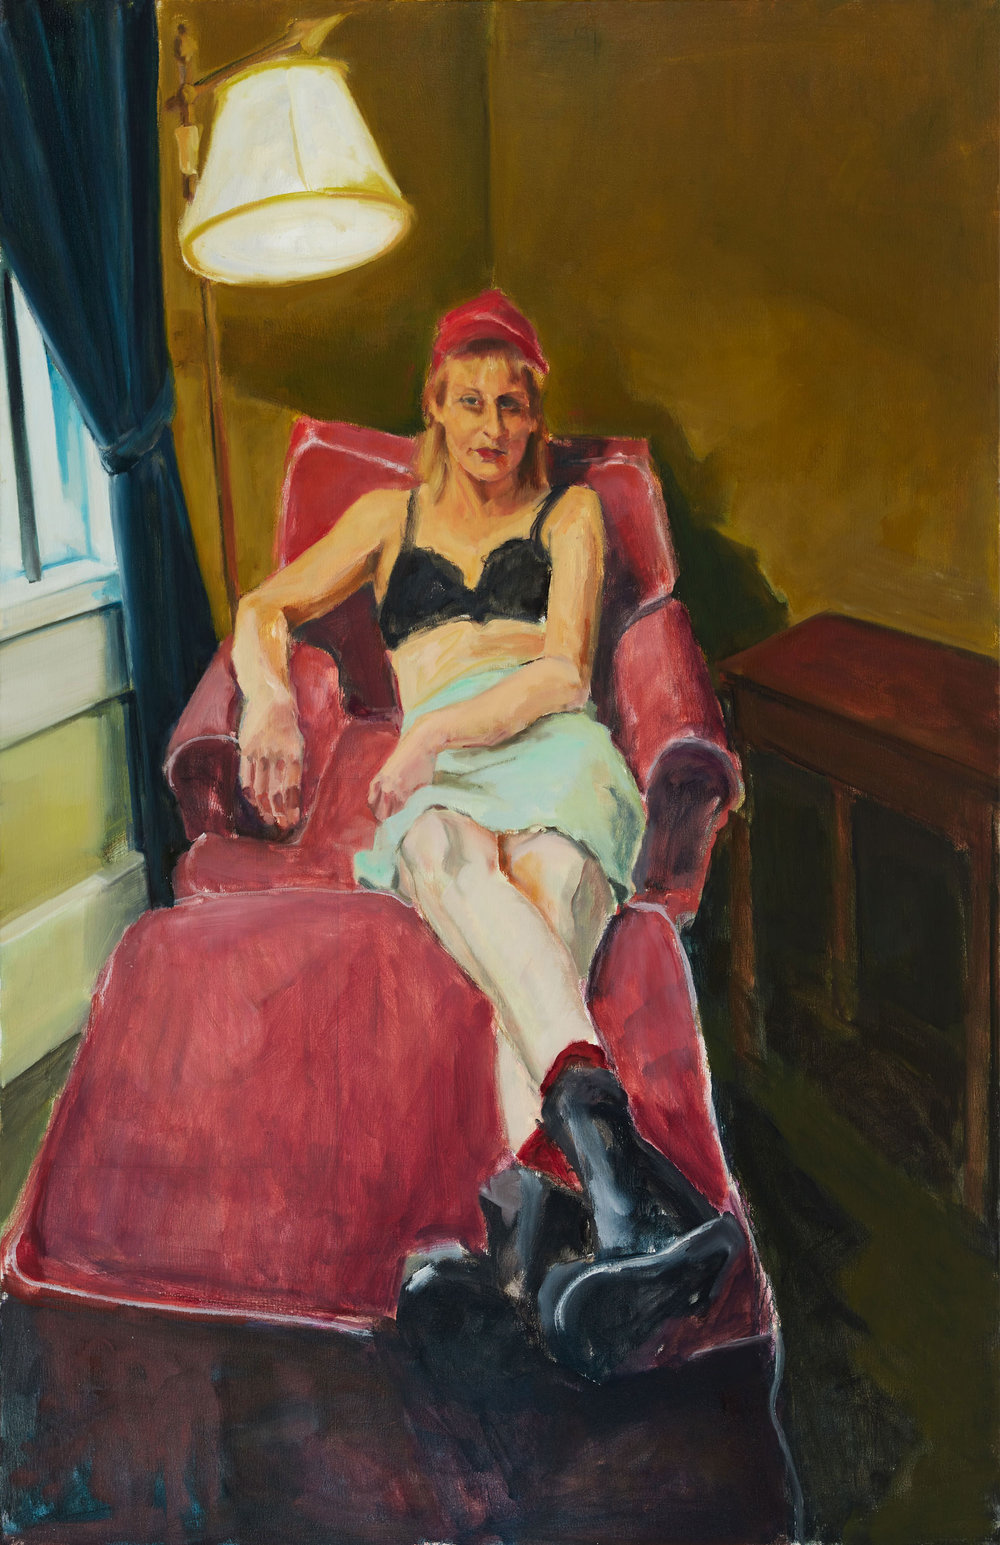 Woman on Red Chair 2016  ,  Oil on canvas, 50 x 42 in.